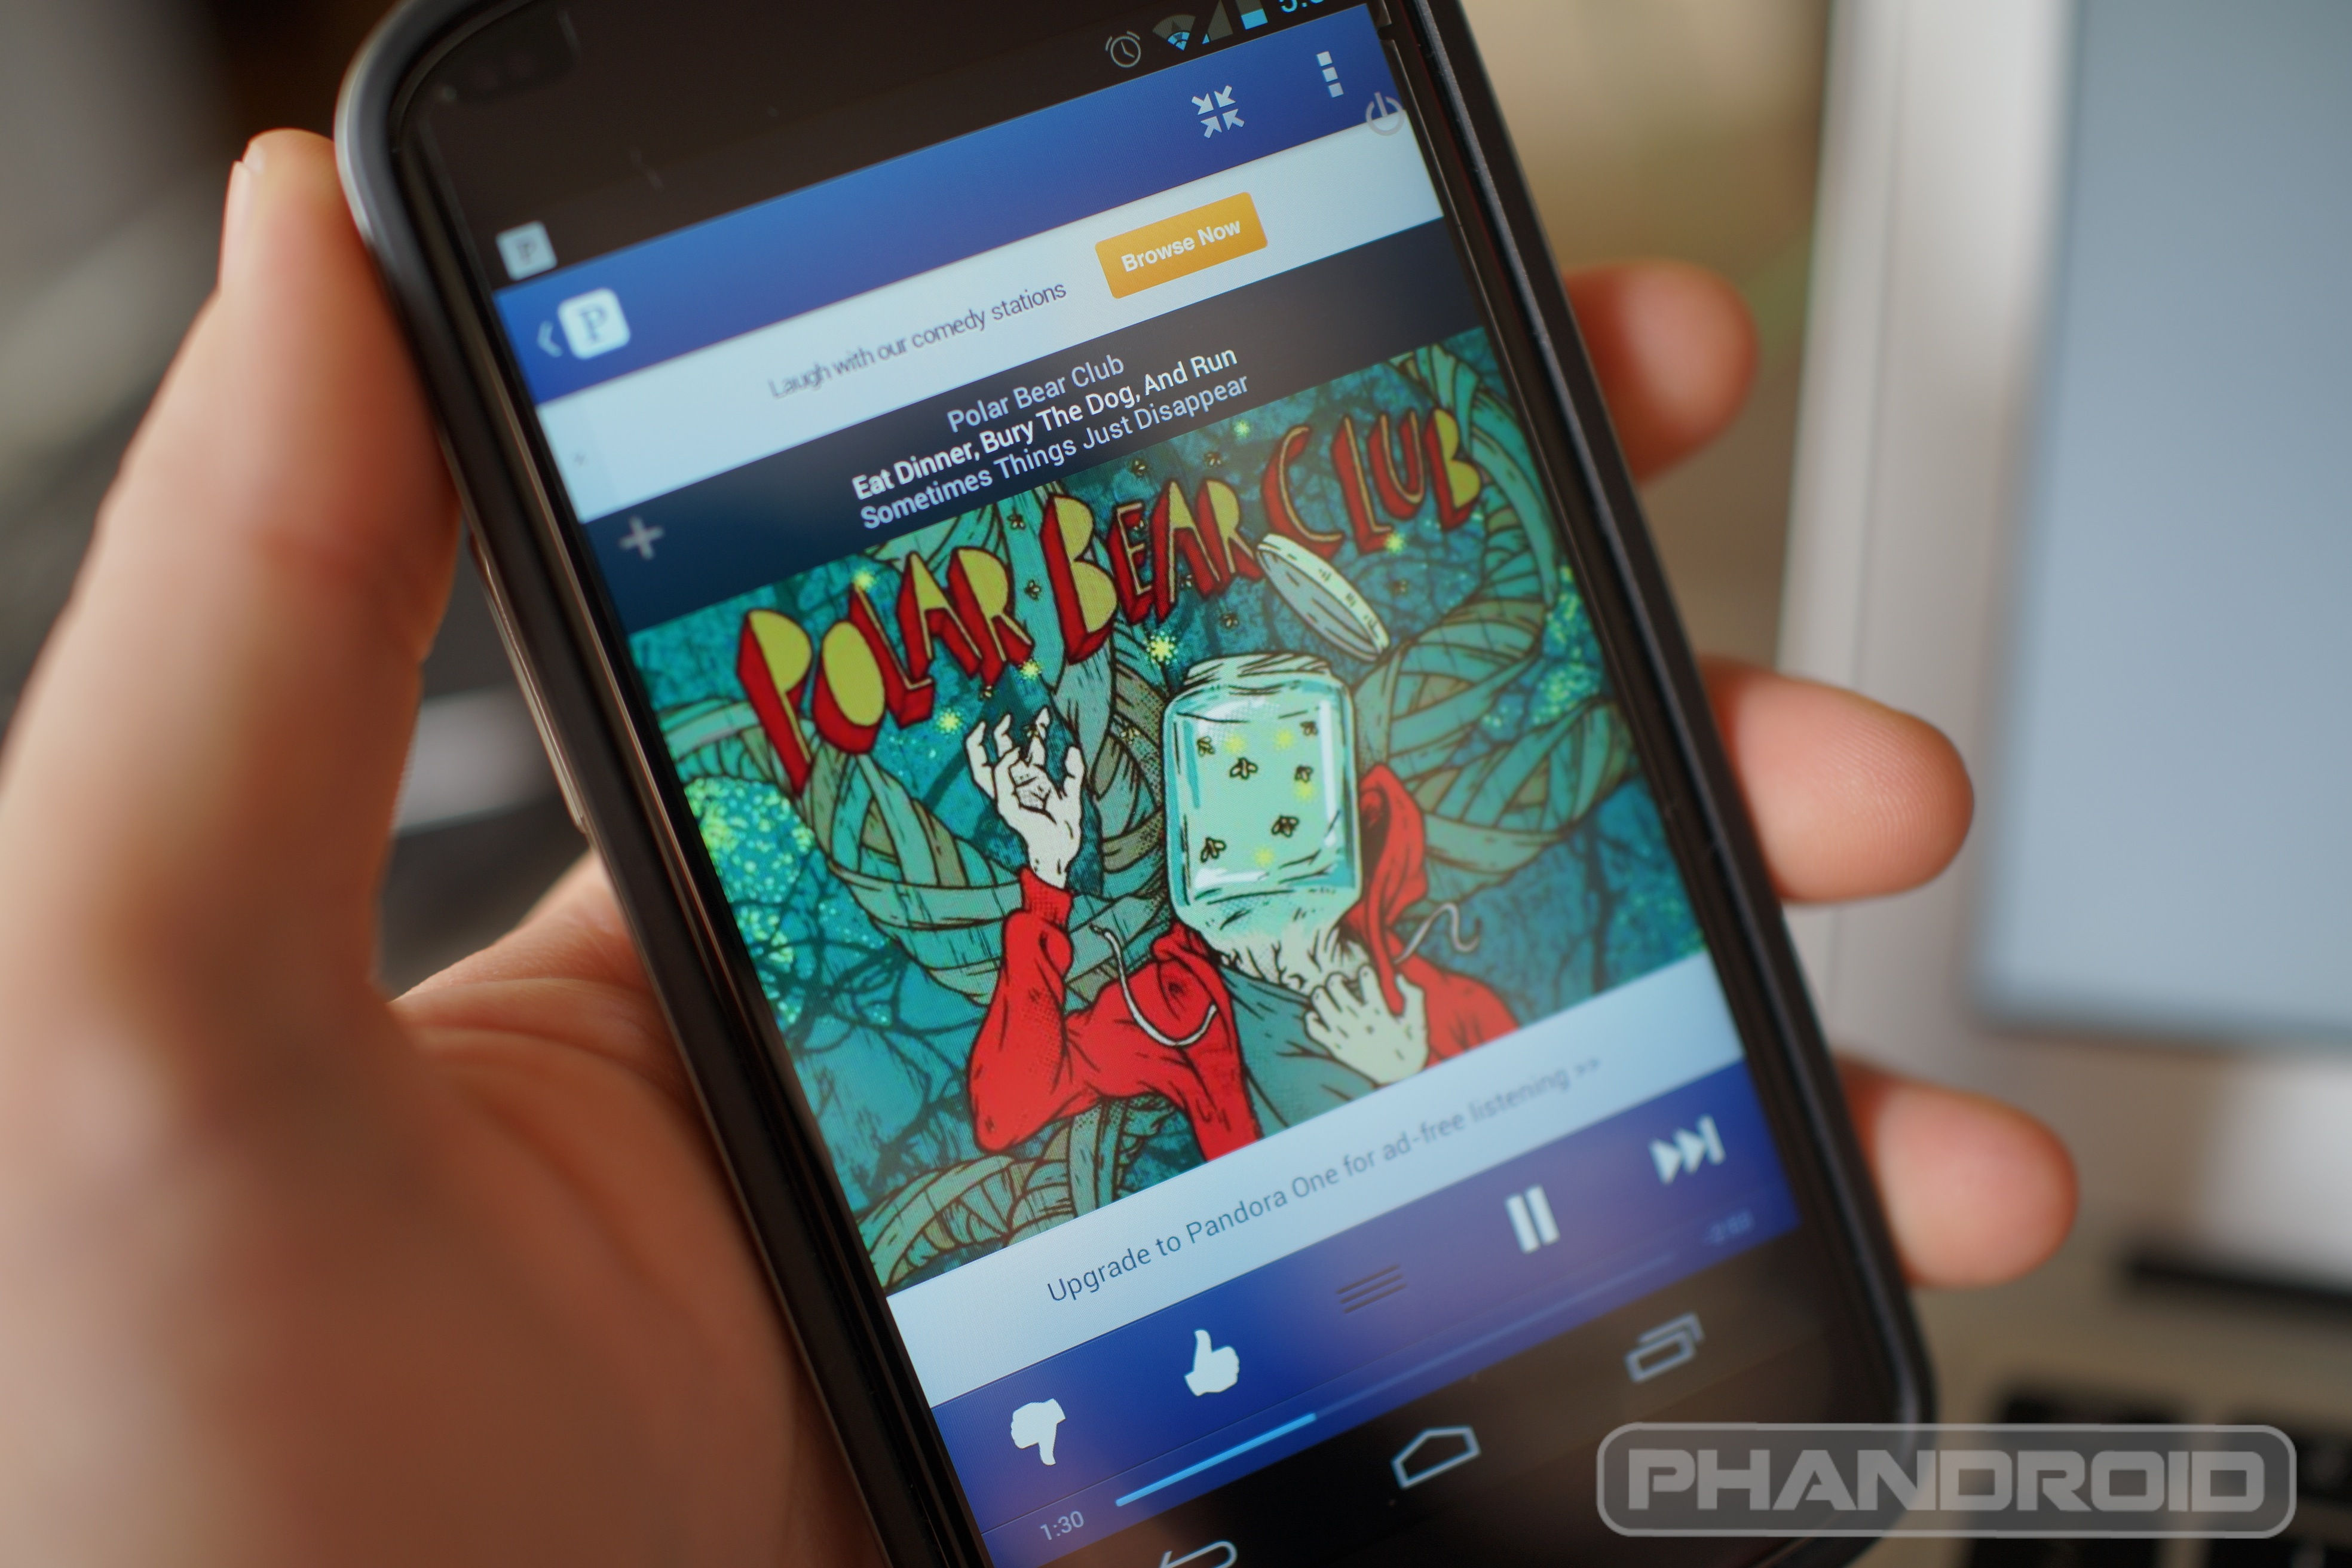 Pandora One subscription sees price increase